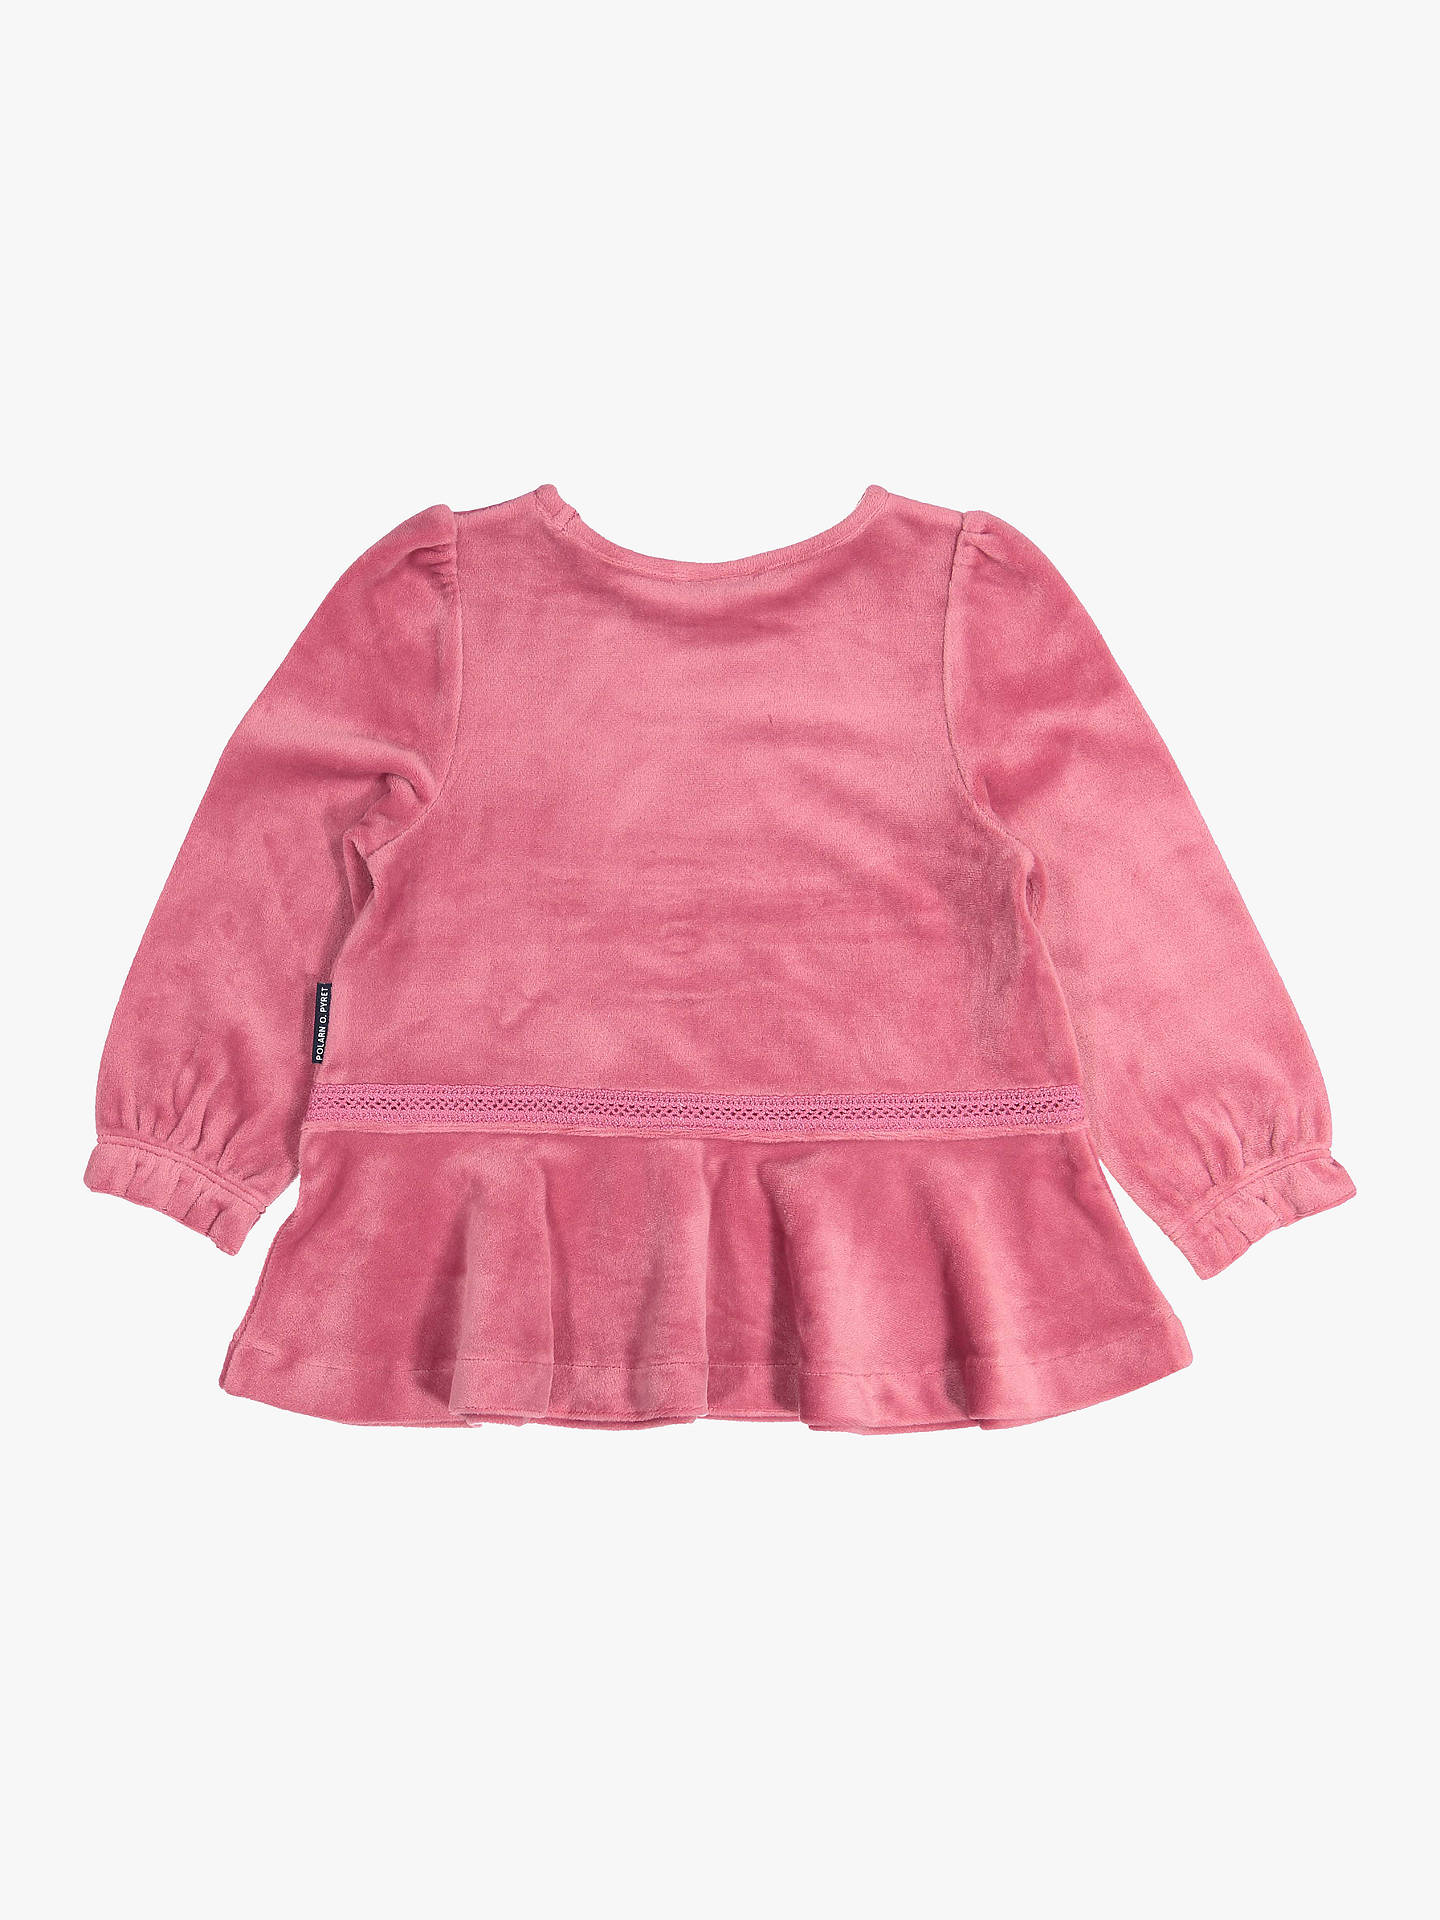 Buy Polarn O. Pyret Baby Velour Top, Pink, 6-9 months Online at johnlewis.com